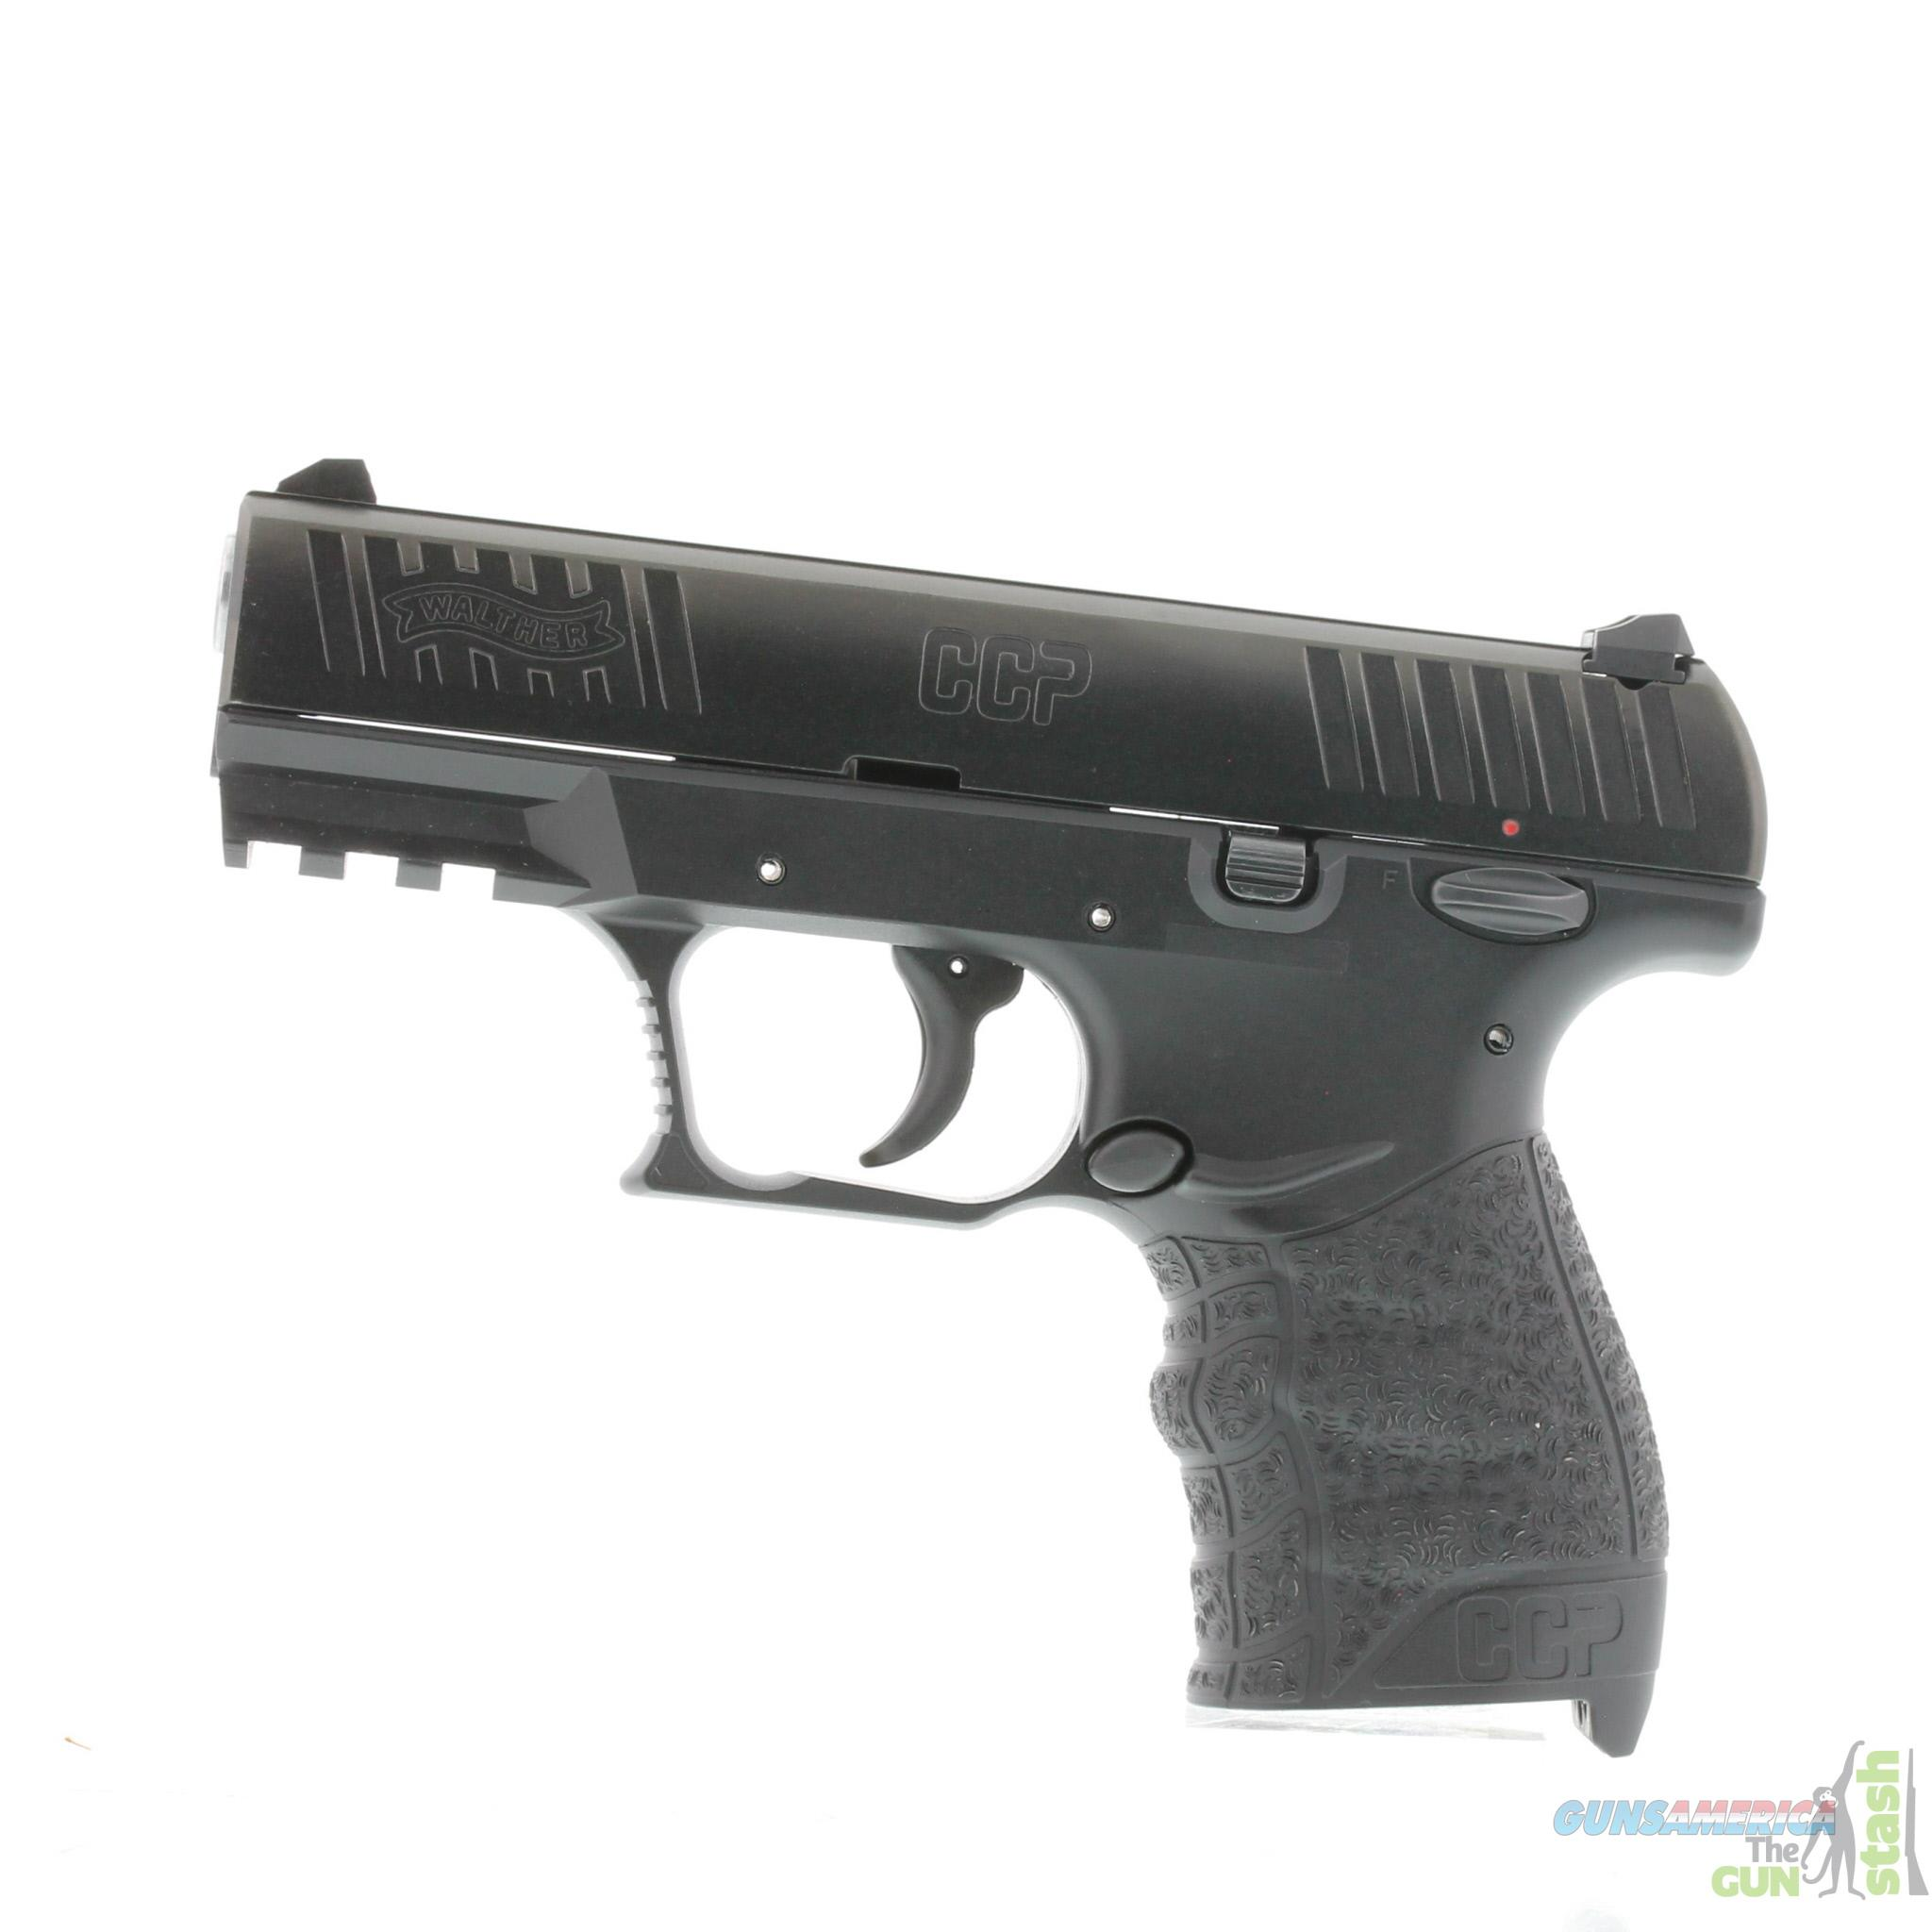 Walther CCP (Concealed Carry Pistol) Single Stack 9mm Pistol  Guns > Pistols > Walther Pistols > Post WWII > CCP